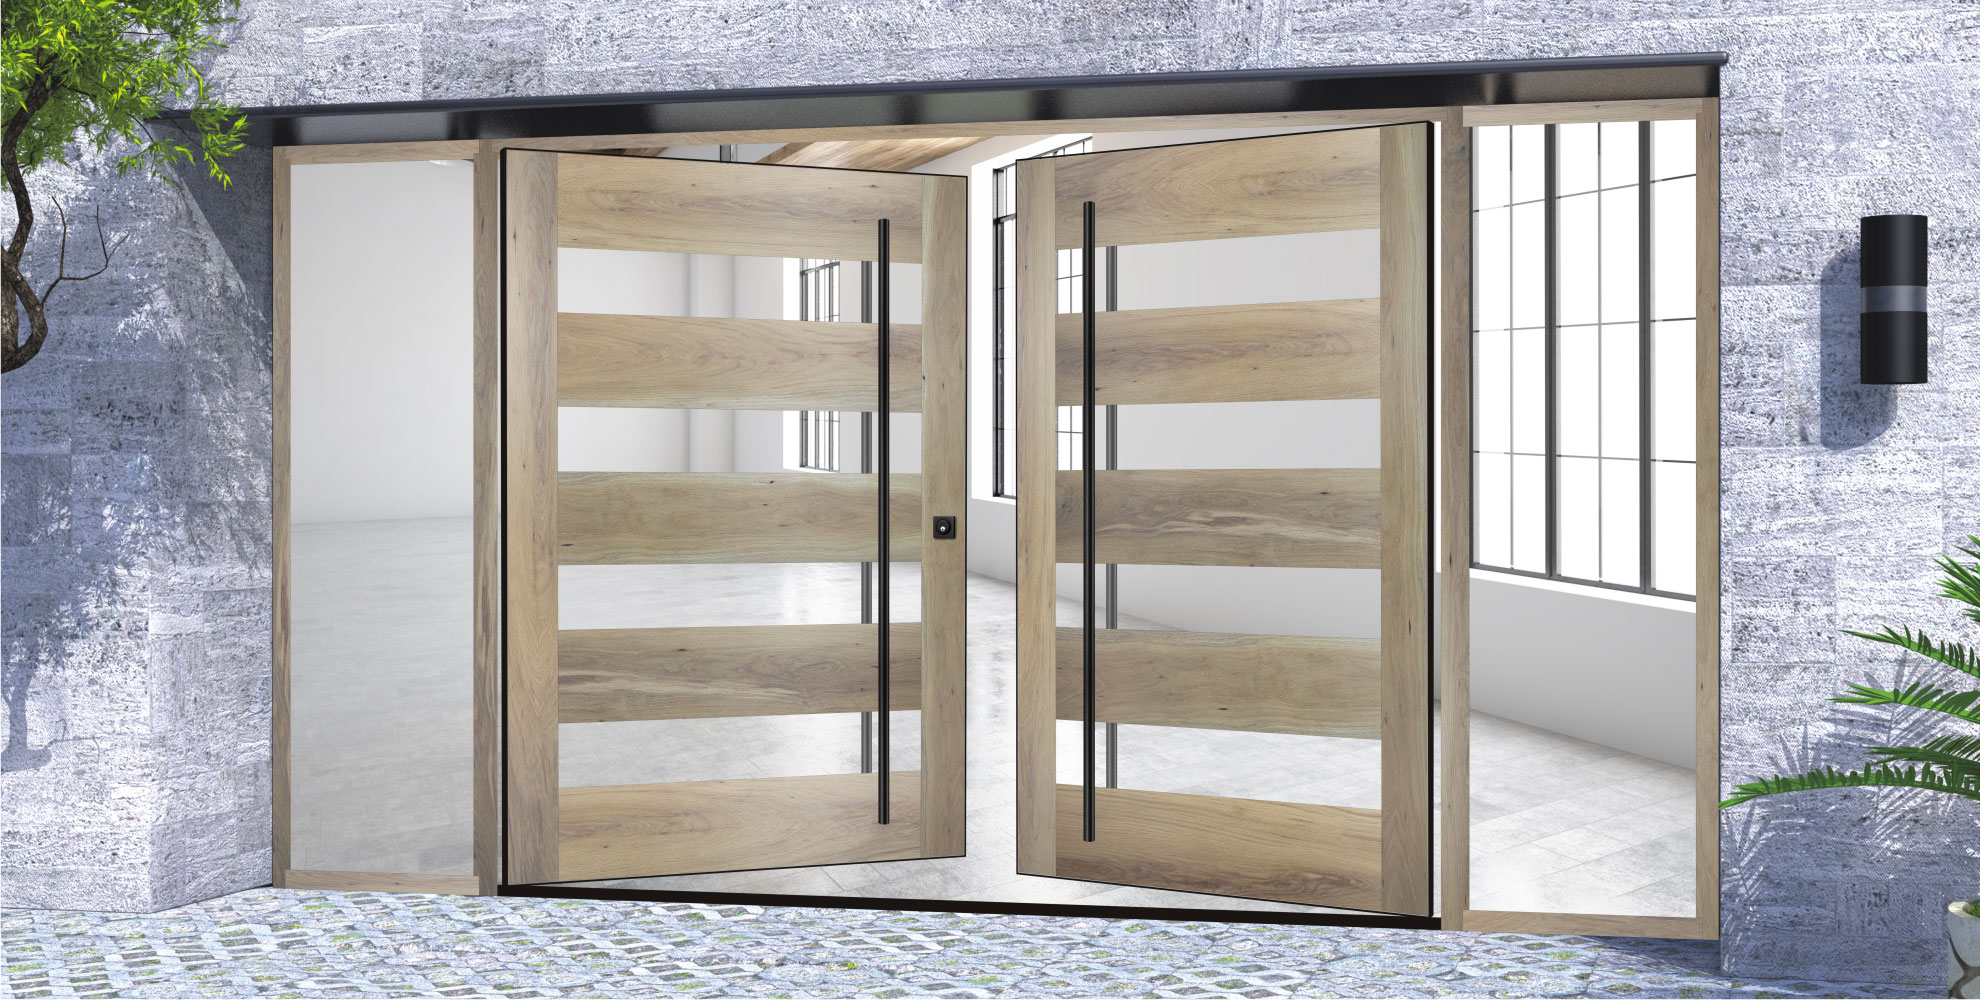 modern entry double doors made of white oak wood and glass with black door hardware and sidelights